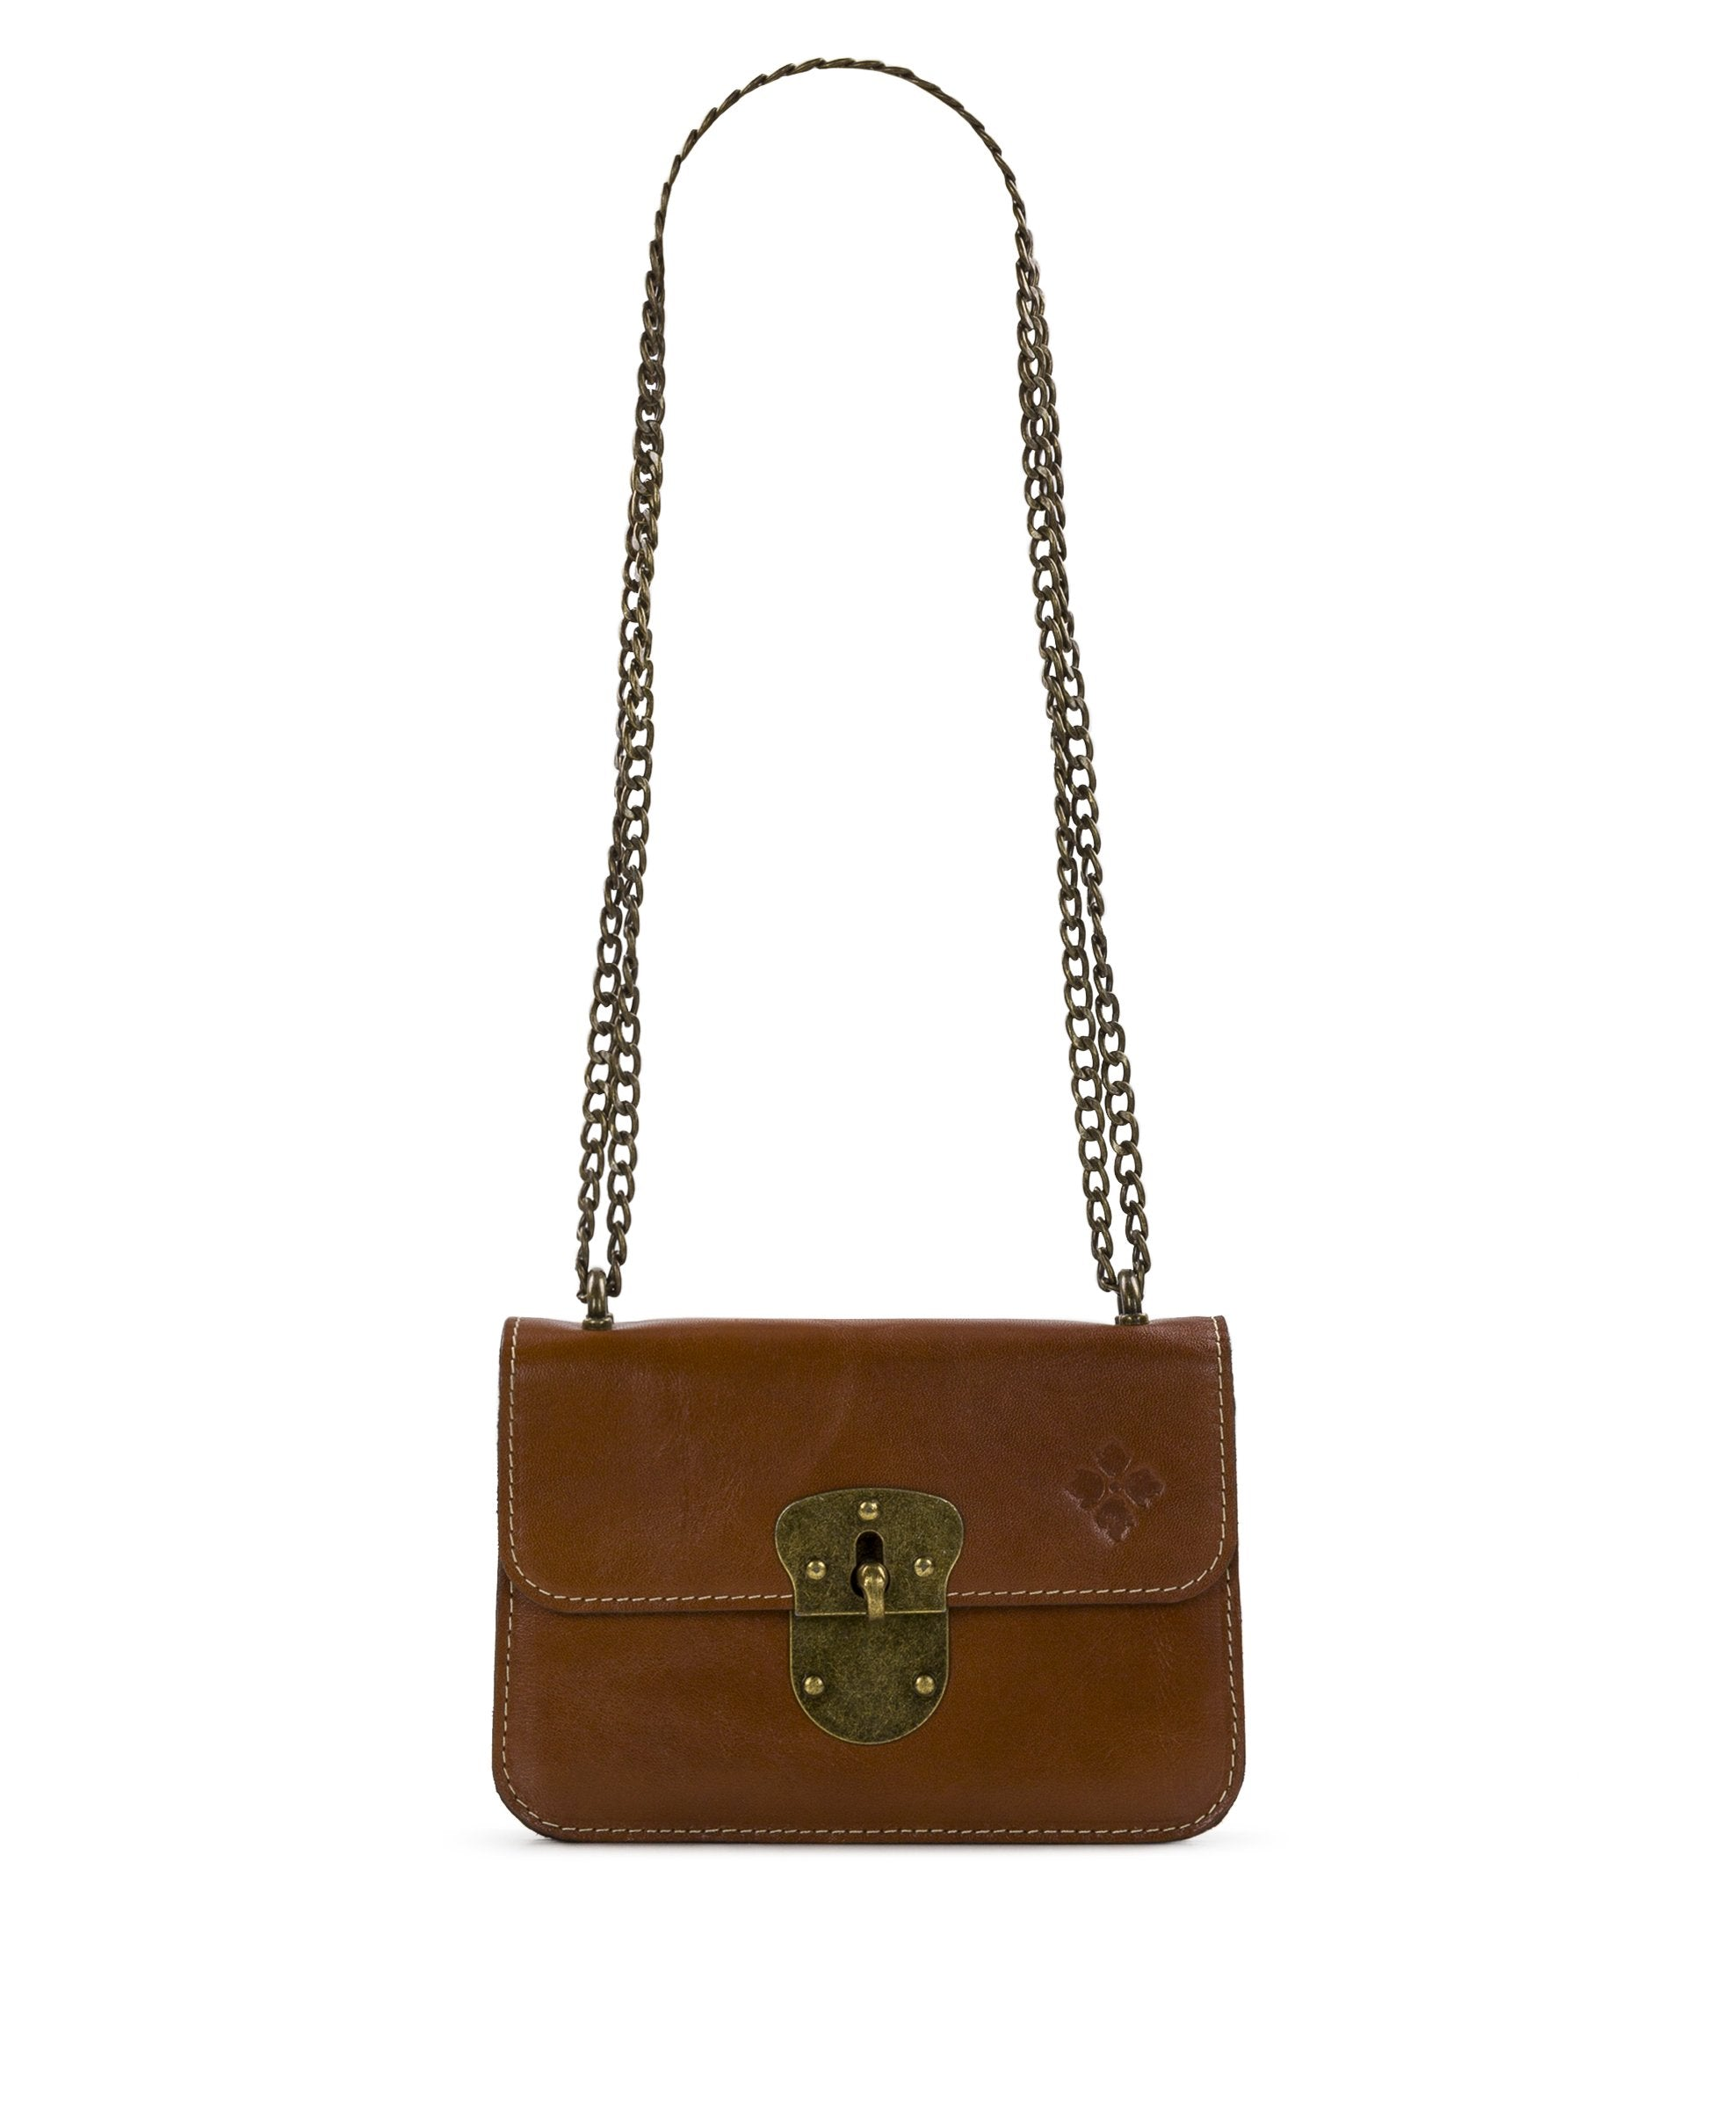 Laterza Chain Bag - Heritage